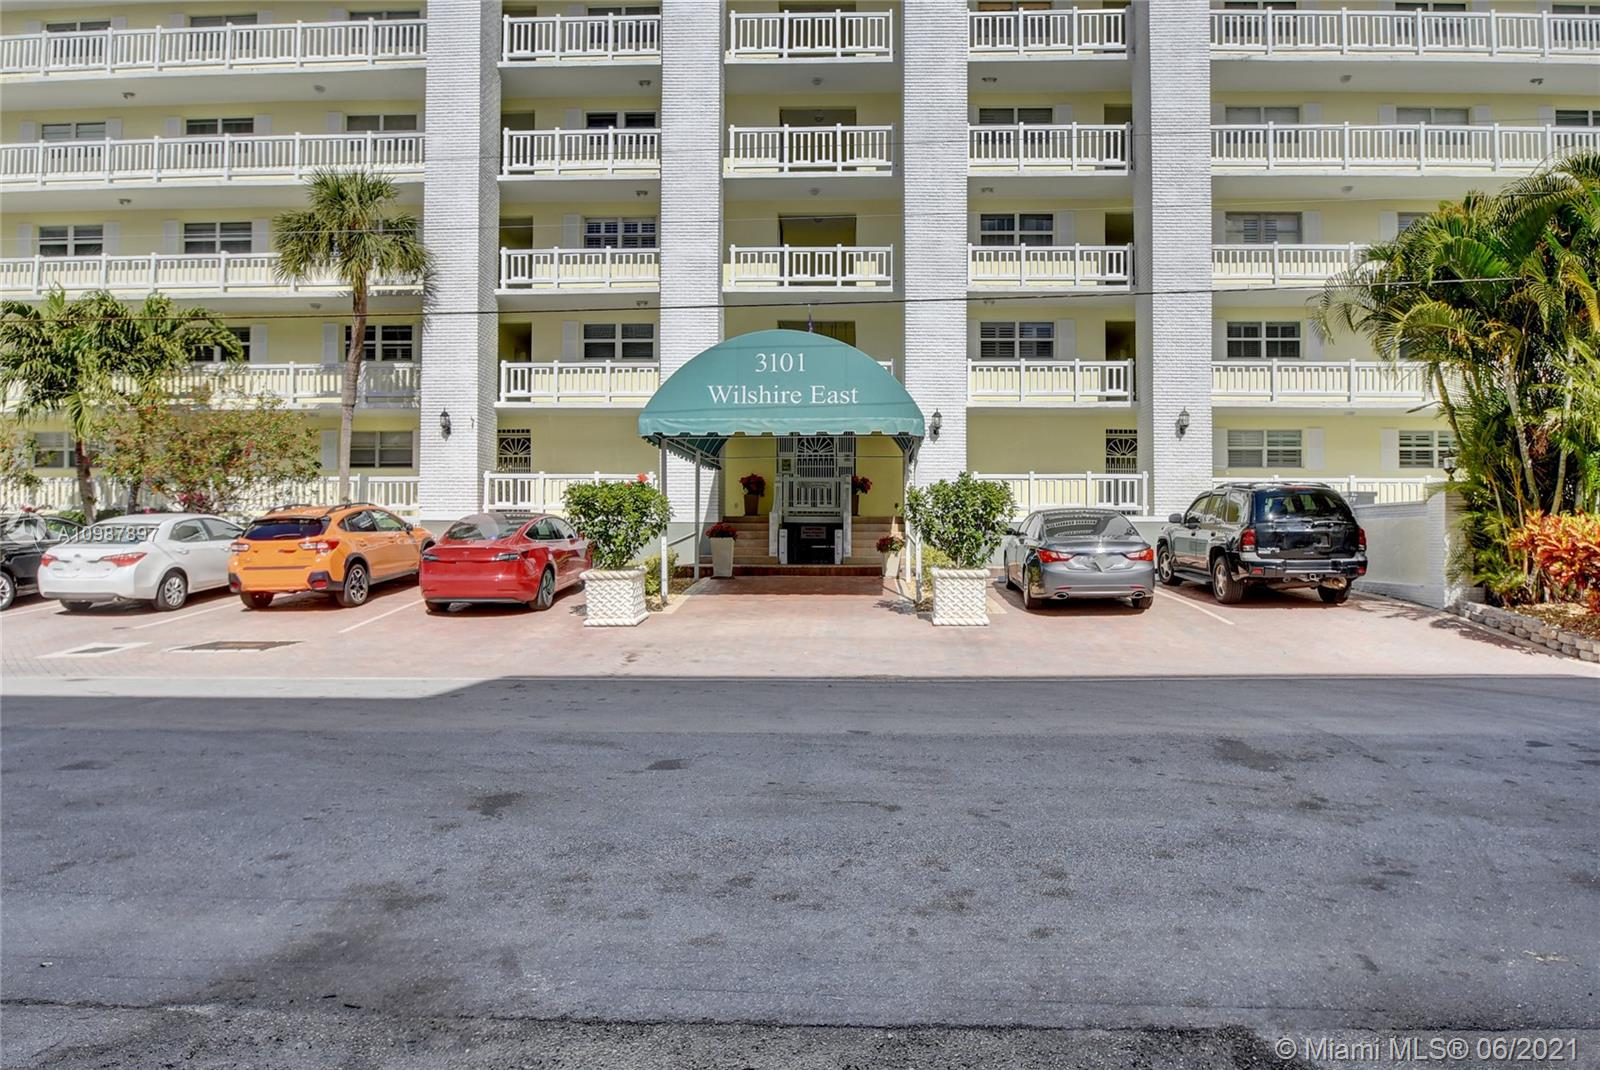 ***50' BOAT DOCK Avail.***  This 2/2 corner unit on a canal with views to the Intracoastal Waterway has been remodeled from top to bottom.  Museum quality remodel with an open checkbook ($200,000!). Smooth ceilings, ALL impact windows and doors- including 30 feet of floor to ceiling windows facing the water, high end custom kitchen w/ quartz countertops, ALL Miele appliances, New Full Size Washer & Dryer in Utility Room, Custom Plantation Shutters, two high end baths with toto, flooring is 2' x 4' designer porcelain. All designer LED lighting.  Best parking space next to the elevator.  Very Reasonable maintenance of $533 per month.  For the discerning buyer not interested in a 12 month remodel.*** Correct Sq. Ft. believed to be 1380 + (converted balcony) 330=1,710 total a/c sq. ft.